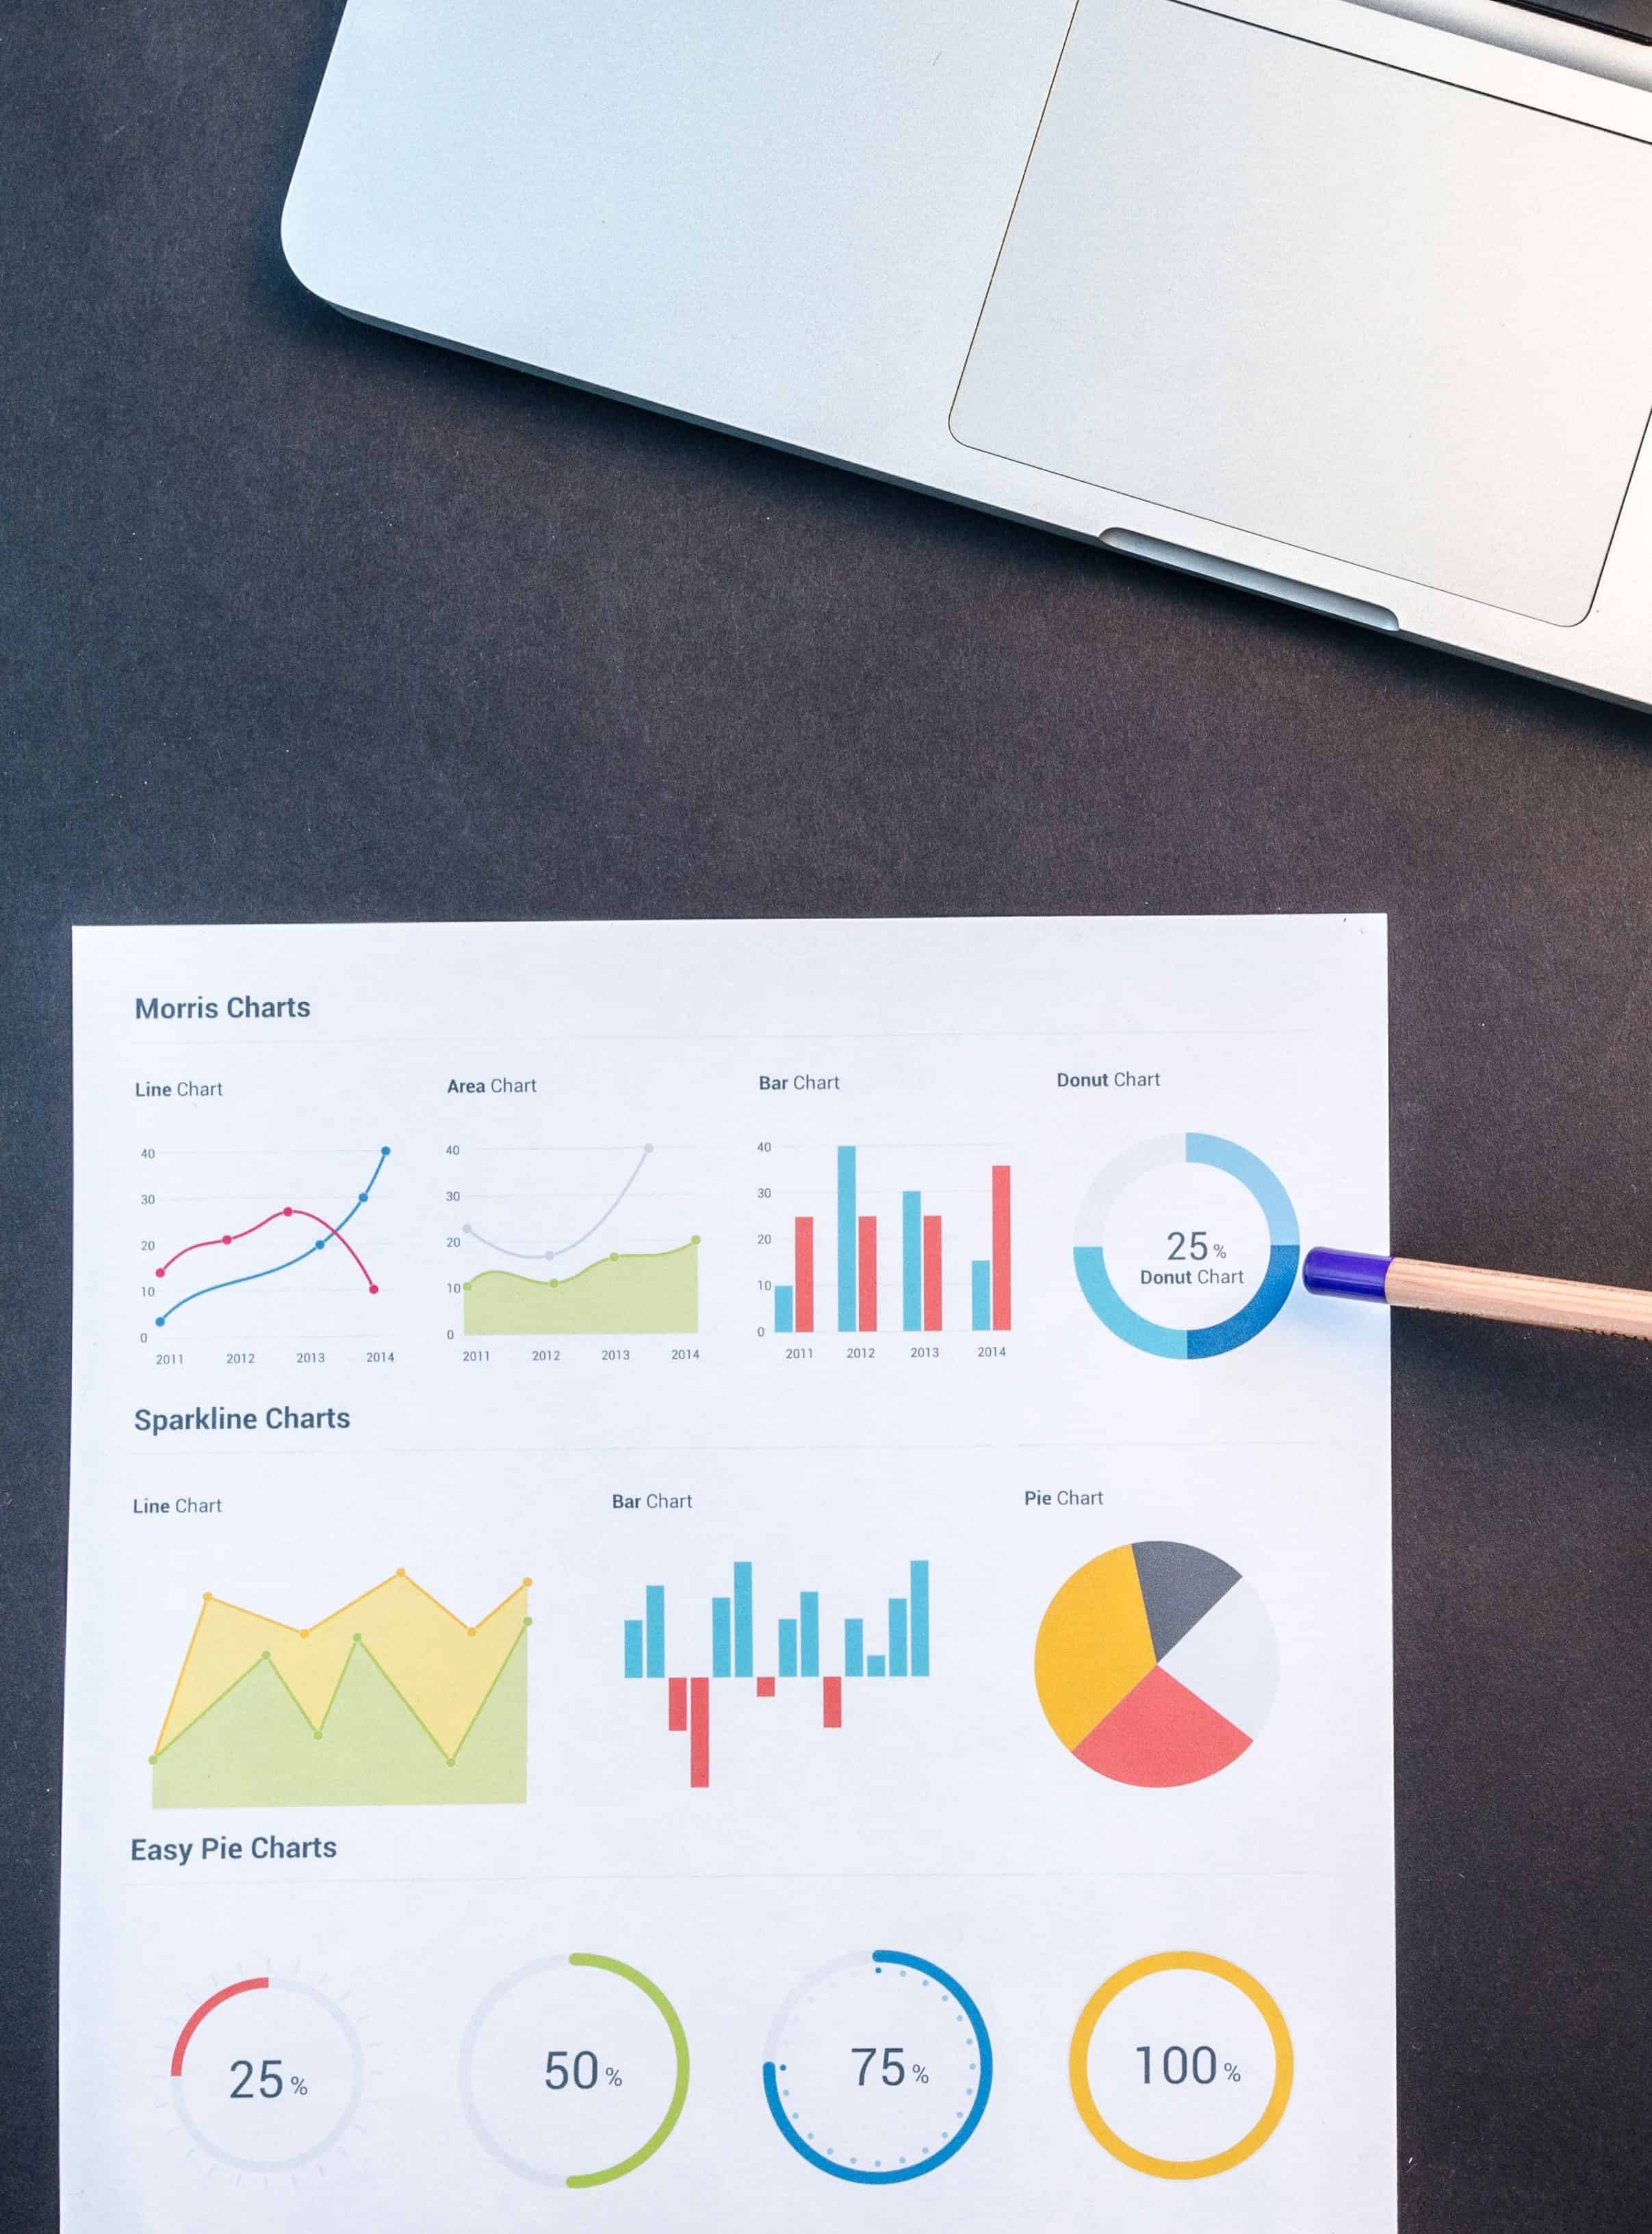 Advanced Product Management: Vision, Strategy & Metrics